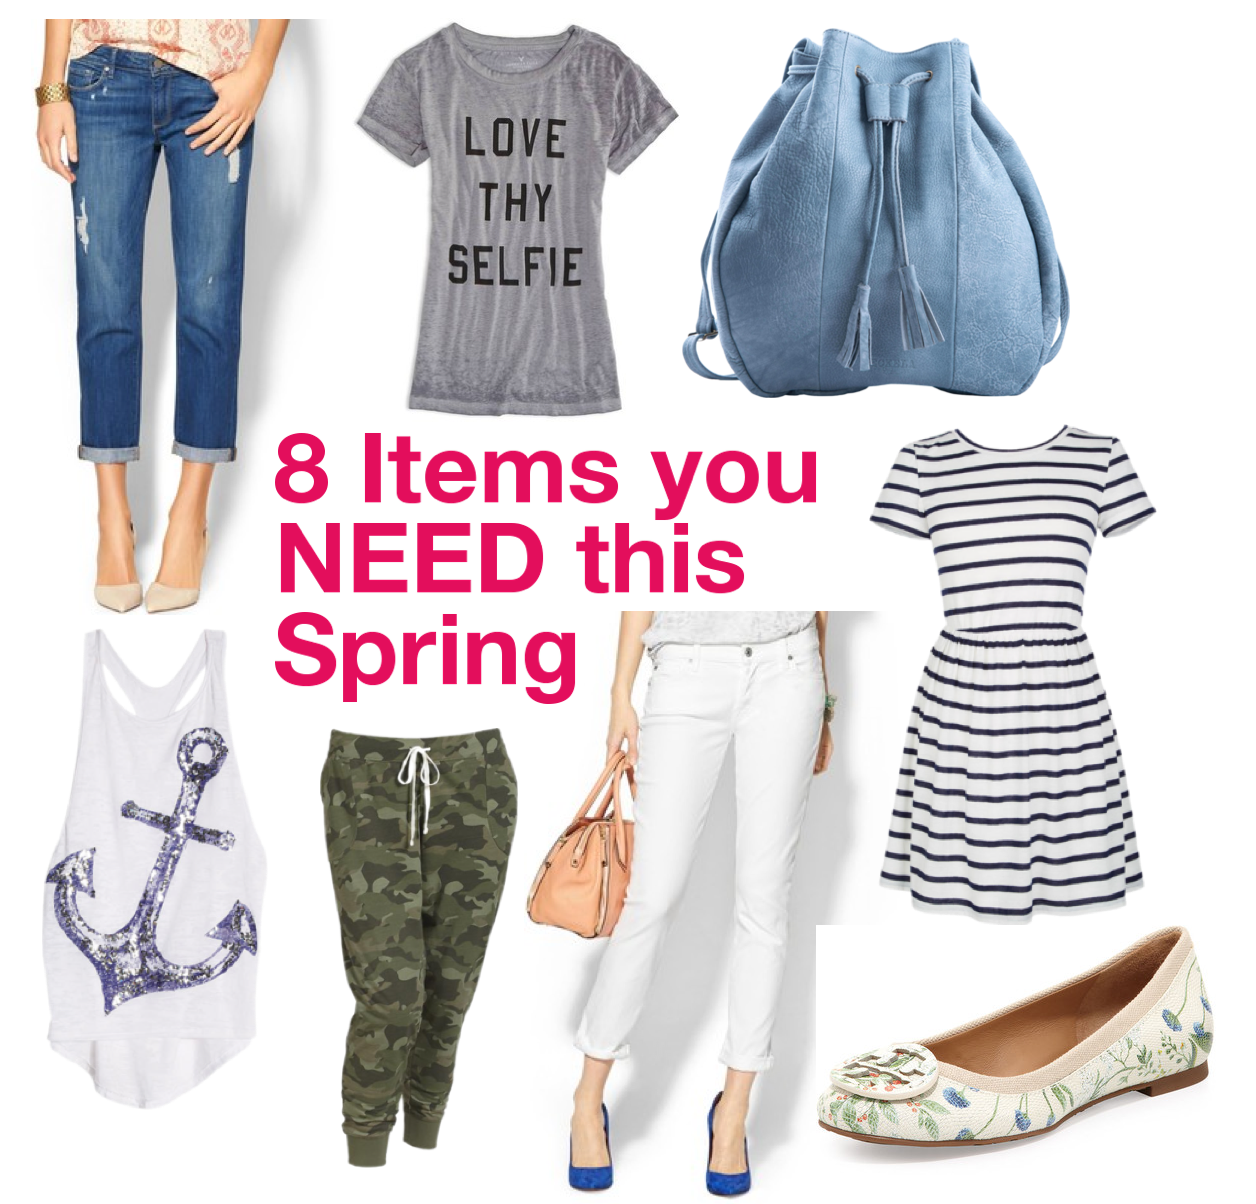 Fashion Trends: 8 Spring Items You Need And Where To Get